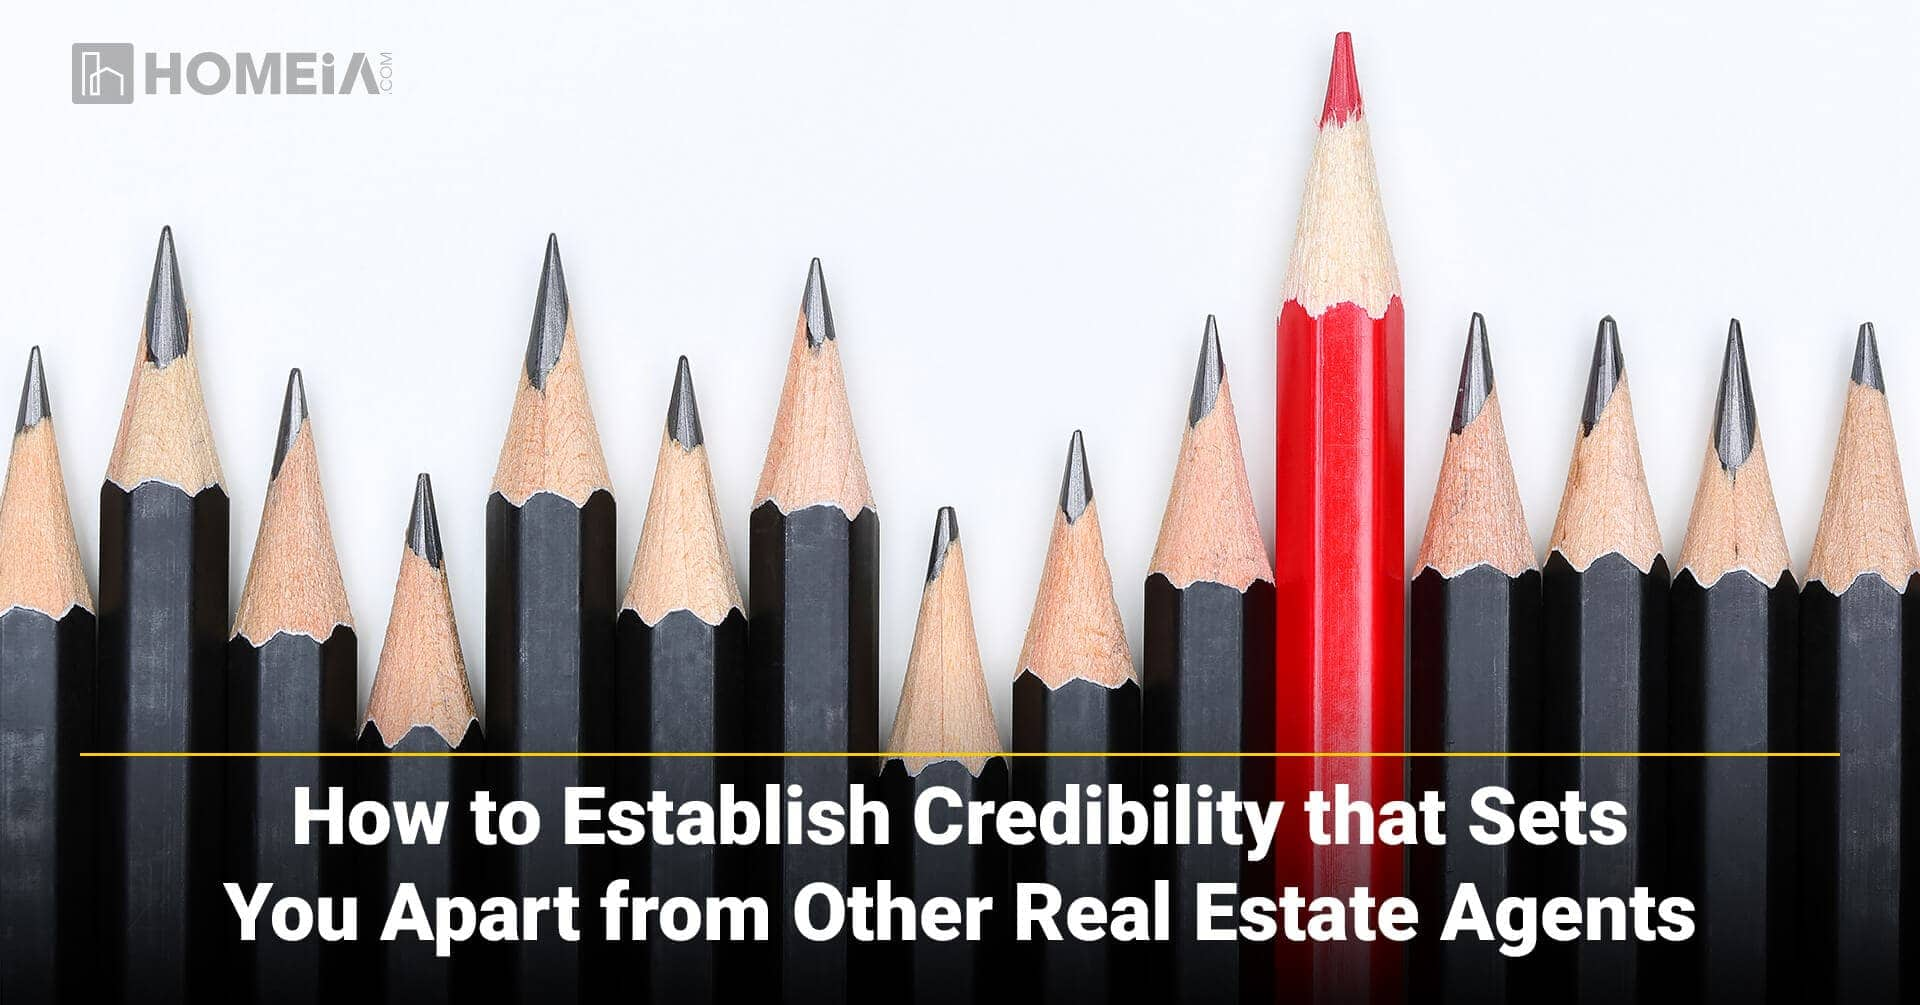 How to Establish Credibility that Sets You Apart from Other Real Estate Agents